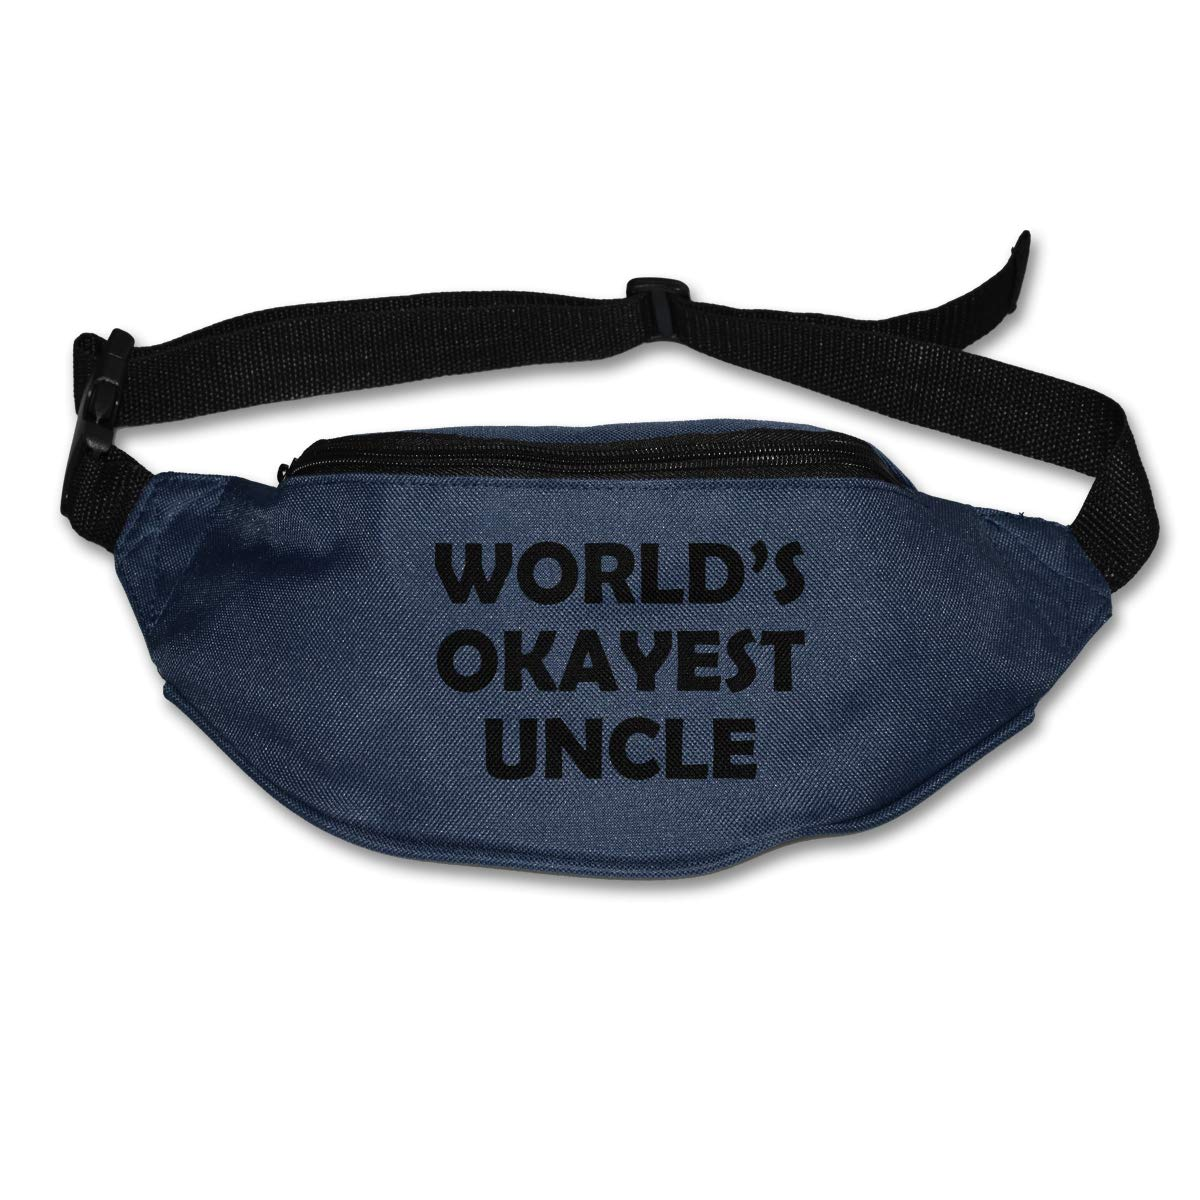 Worlds Okayest Uncle Sport Waist Bag Fanny Pack Adjustable For Run